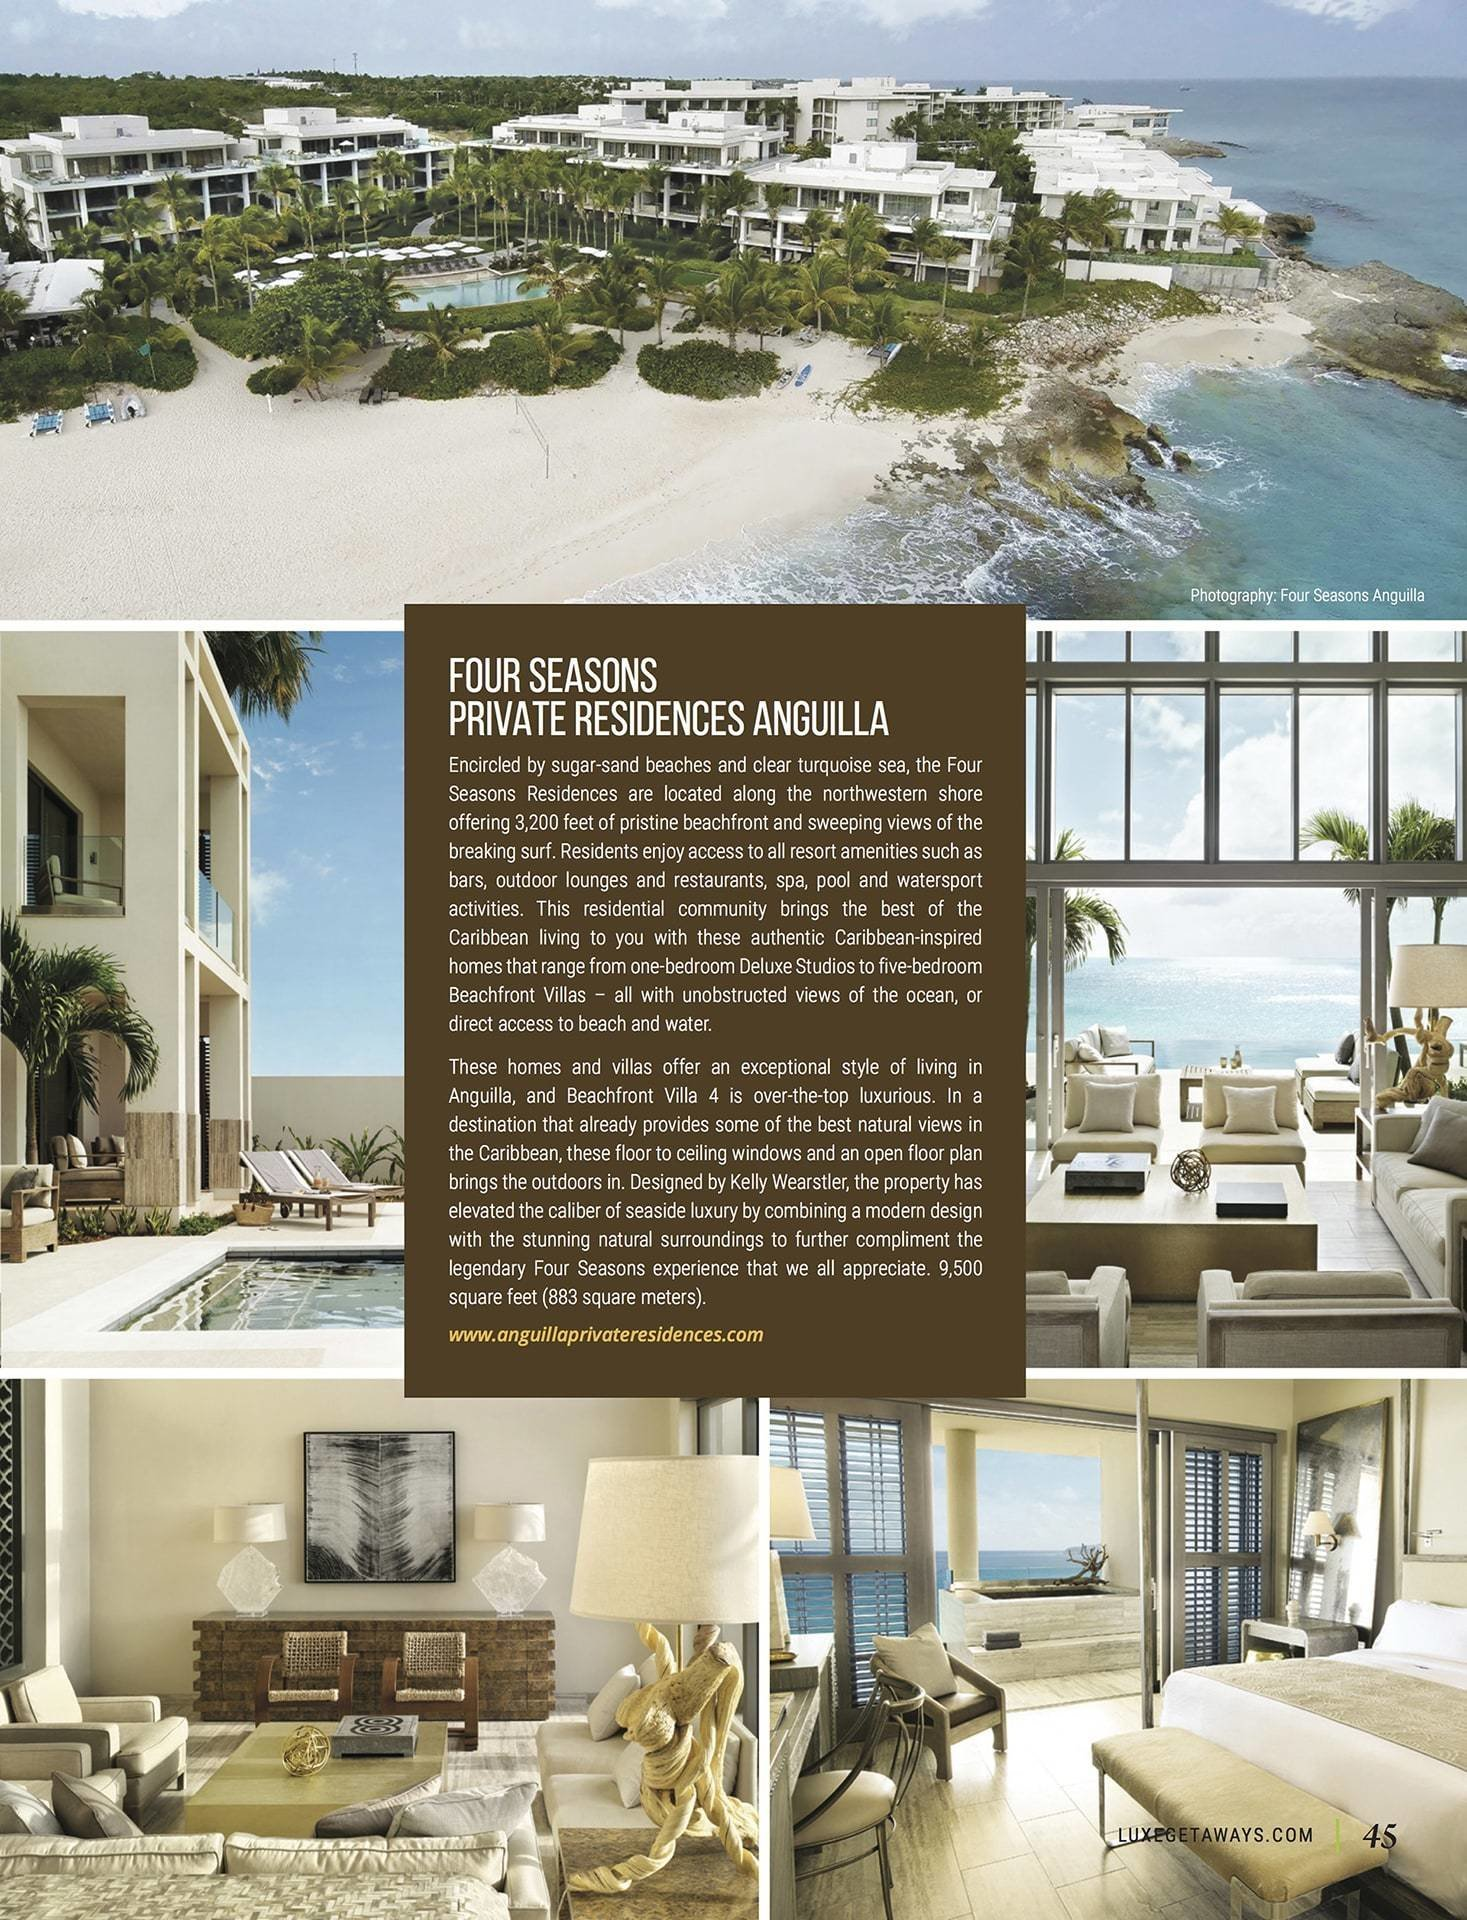 LuxeGetaways - Luxury Travel - Luxury Travel Magazine - Ritz Carlton Dove Valley - Four Seasons Anguilla - Private Residence - luxury real estate